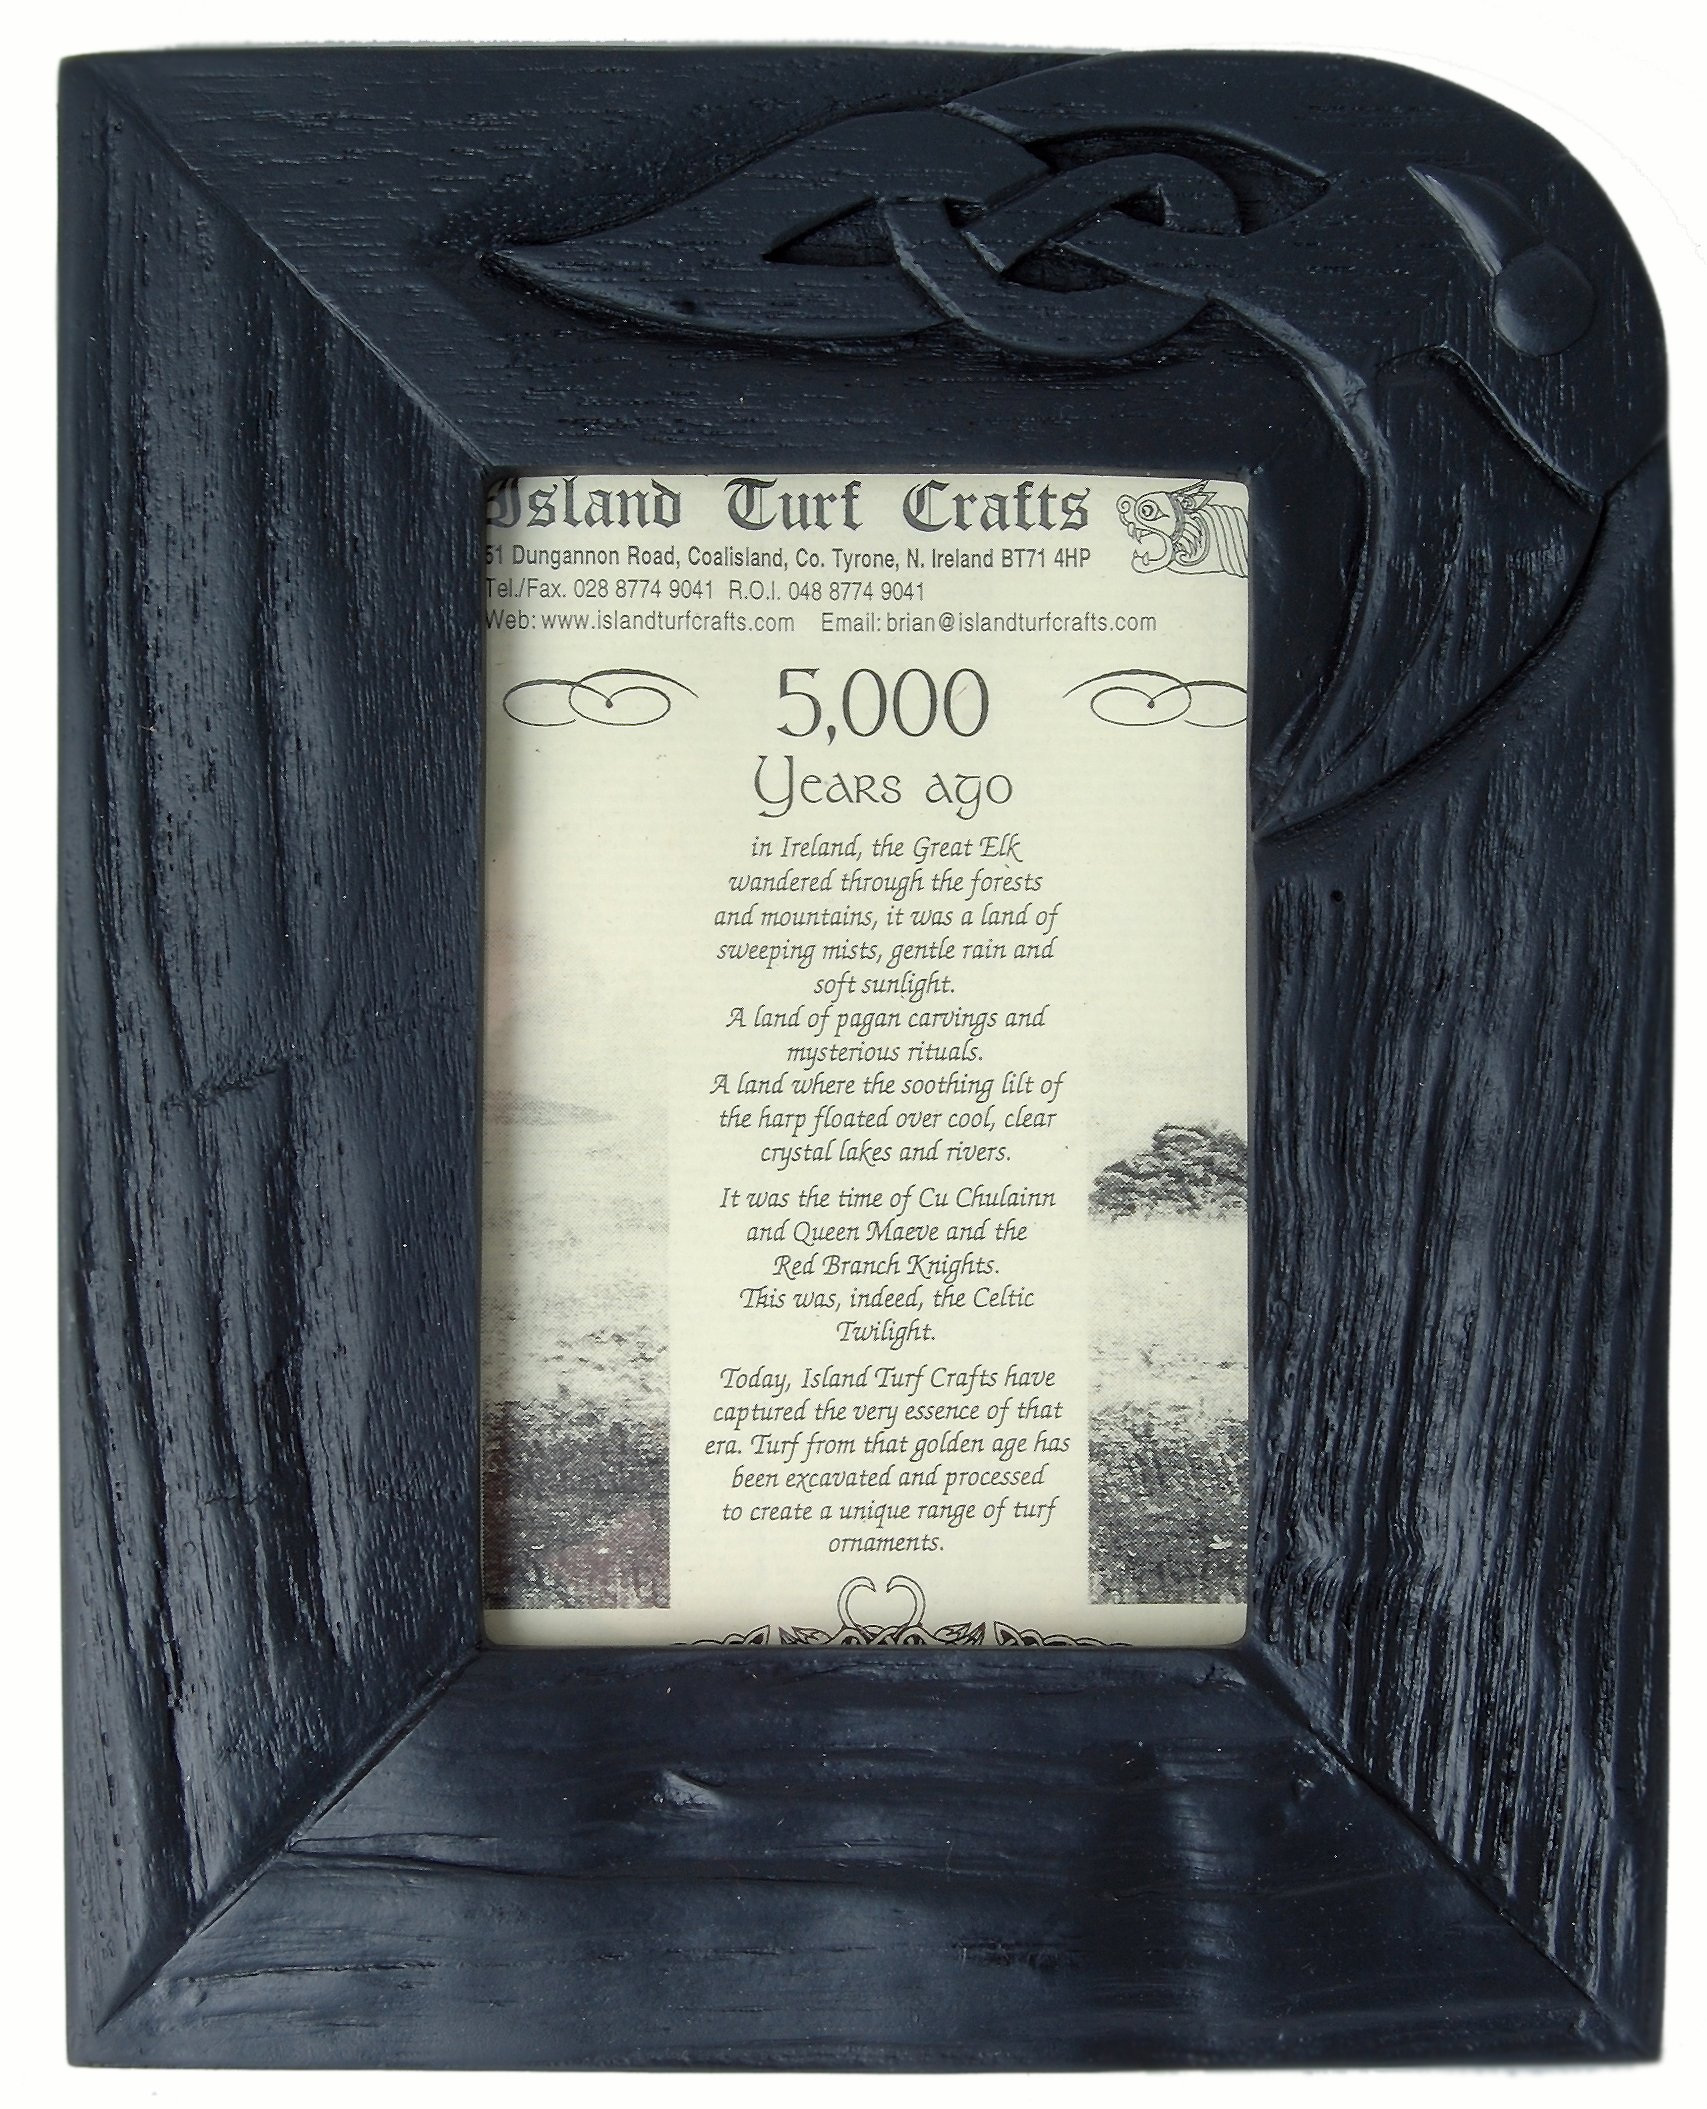 Bog Oak Frame (9'' x 7'') (BK7) by Island Turf Crafts Ltd